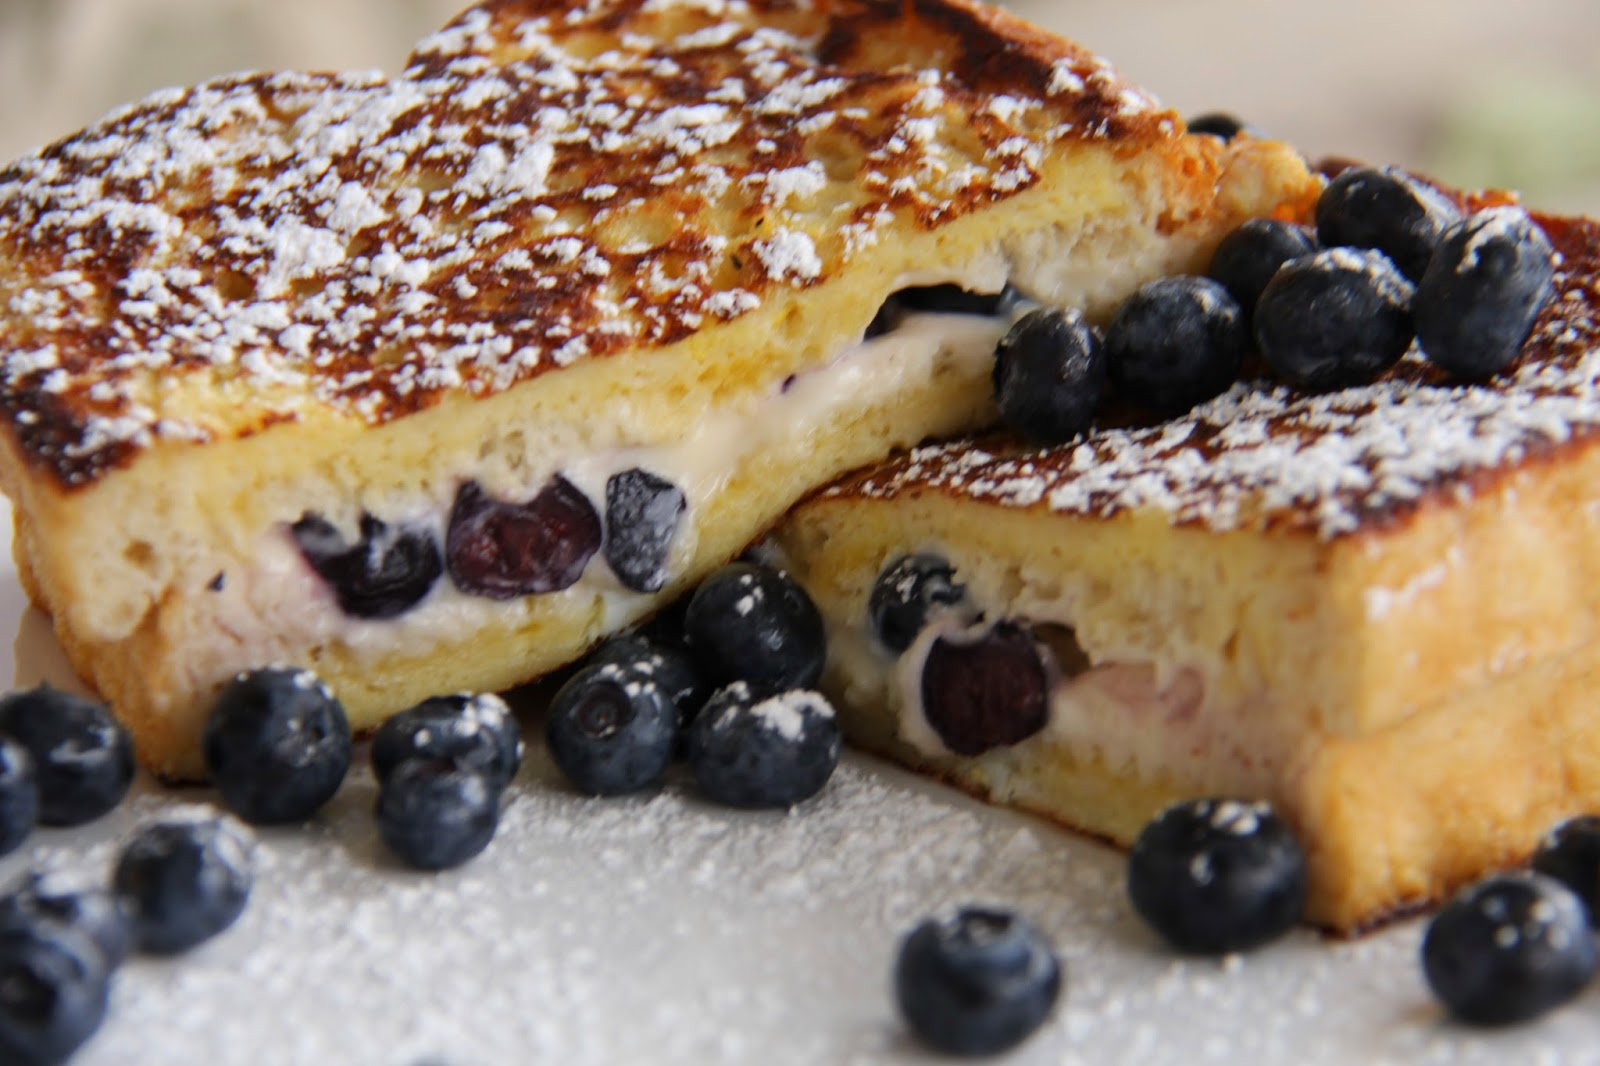 Blueberry Cream Cheese Stuffed French Toast A Bountiful